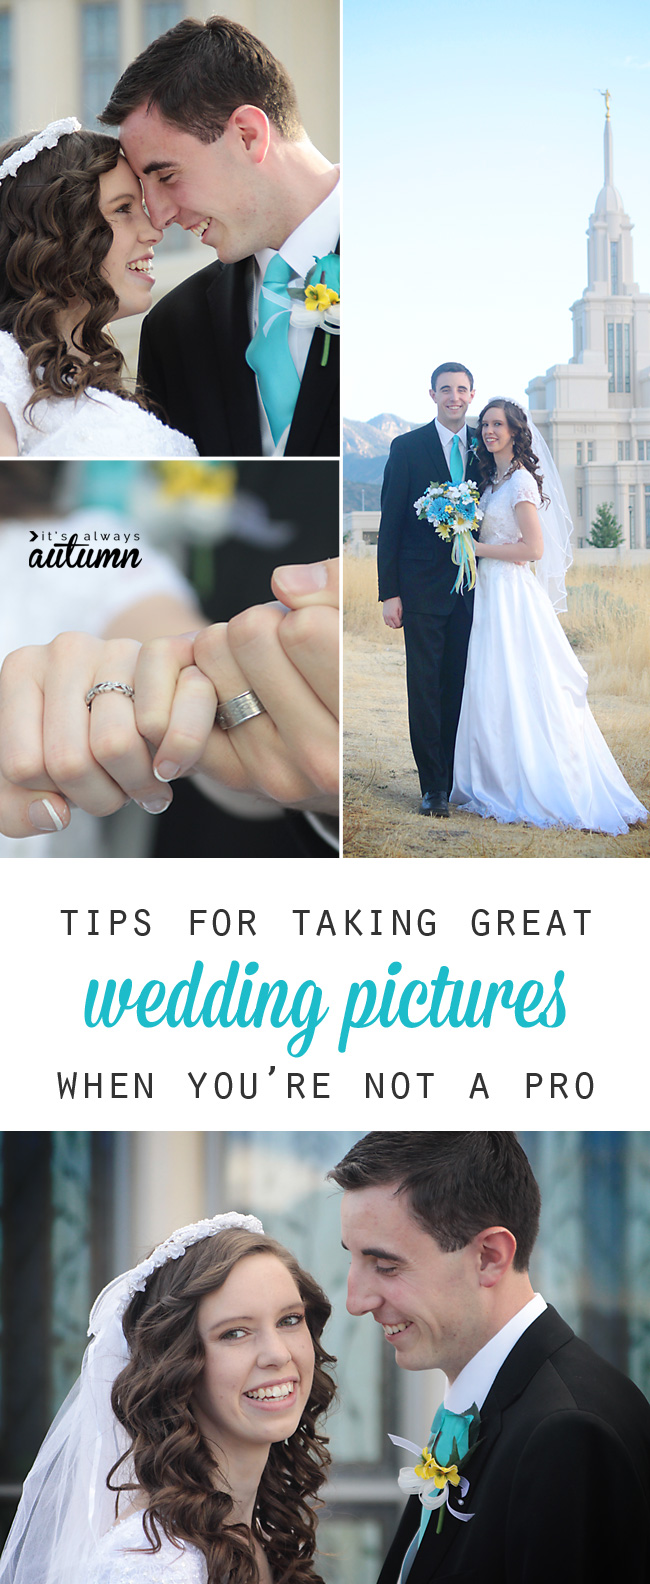 how to take great wedding photos when you're not a pro - It's Always Autumn